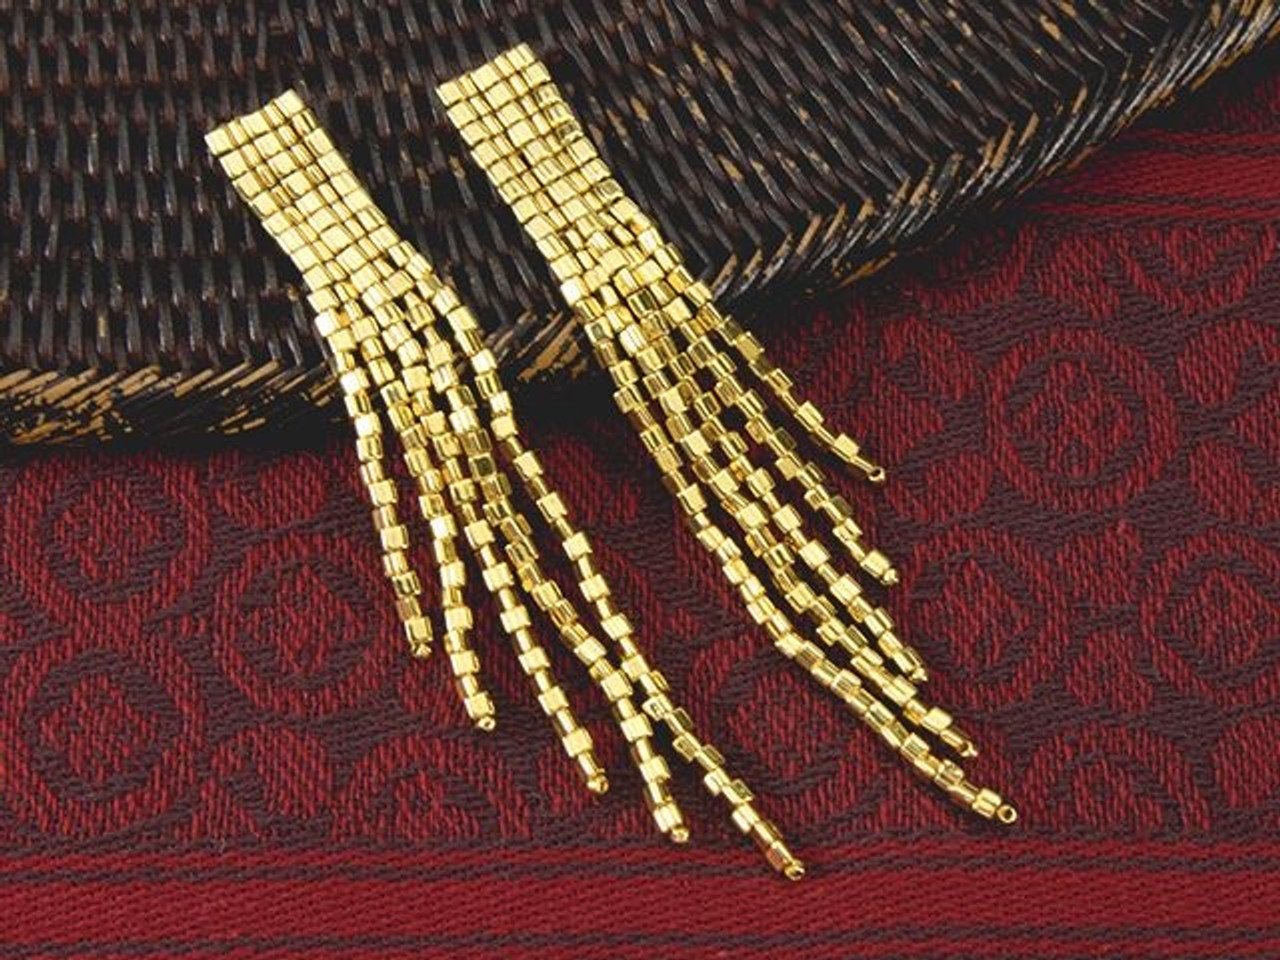 2 STRAND SLIDE LOCK 8 EIGHT Beadsmith Gold-Plated Tube Clasps